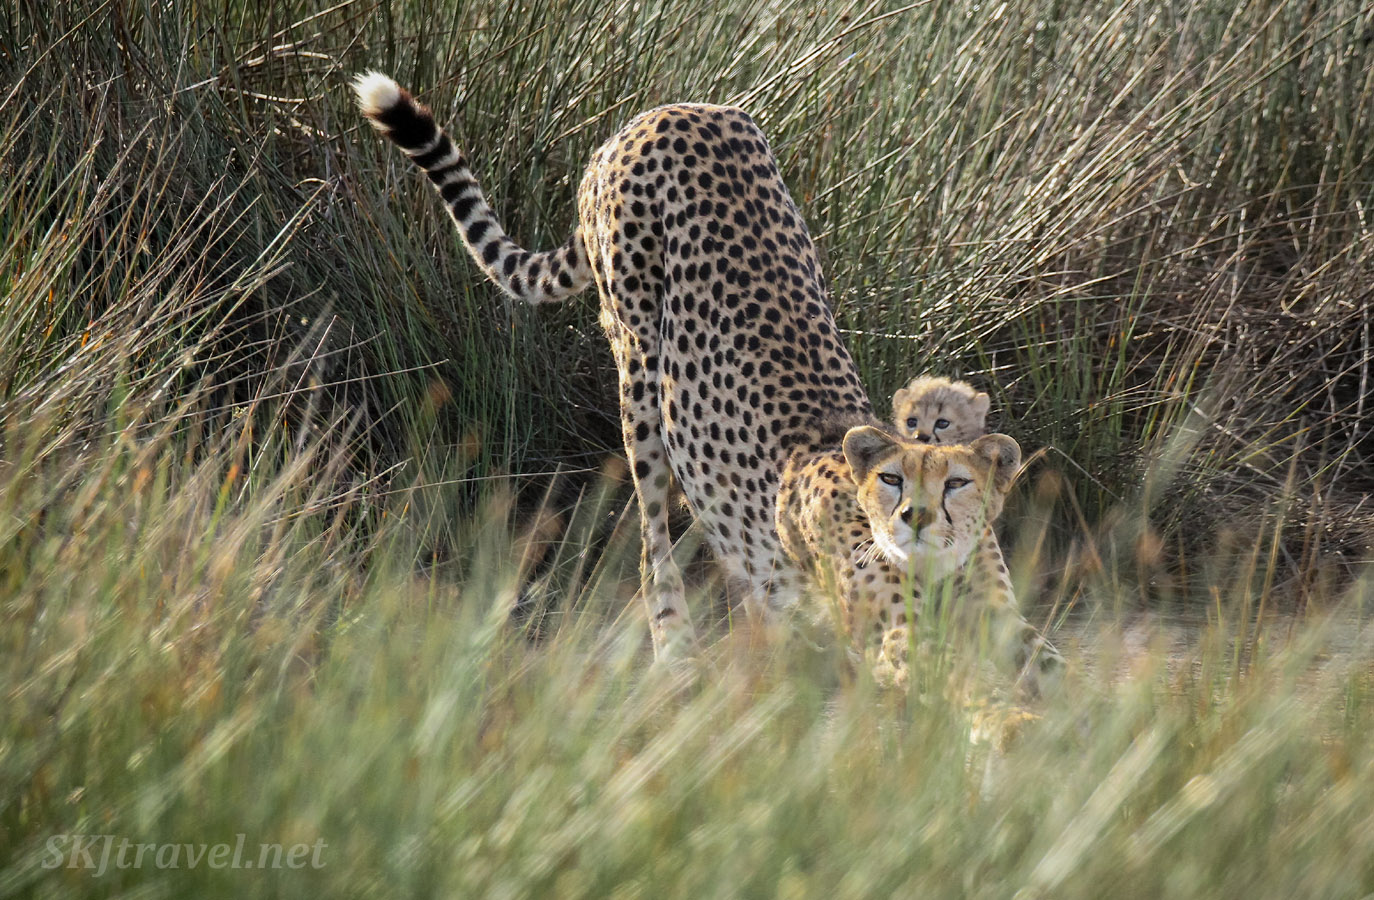 Mother cheetah stretching with baby cheetah peeking over the top of her heads. Among tall reeds in Ndutu, Tanzania.